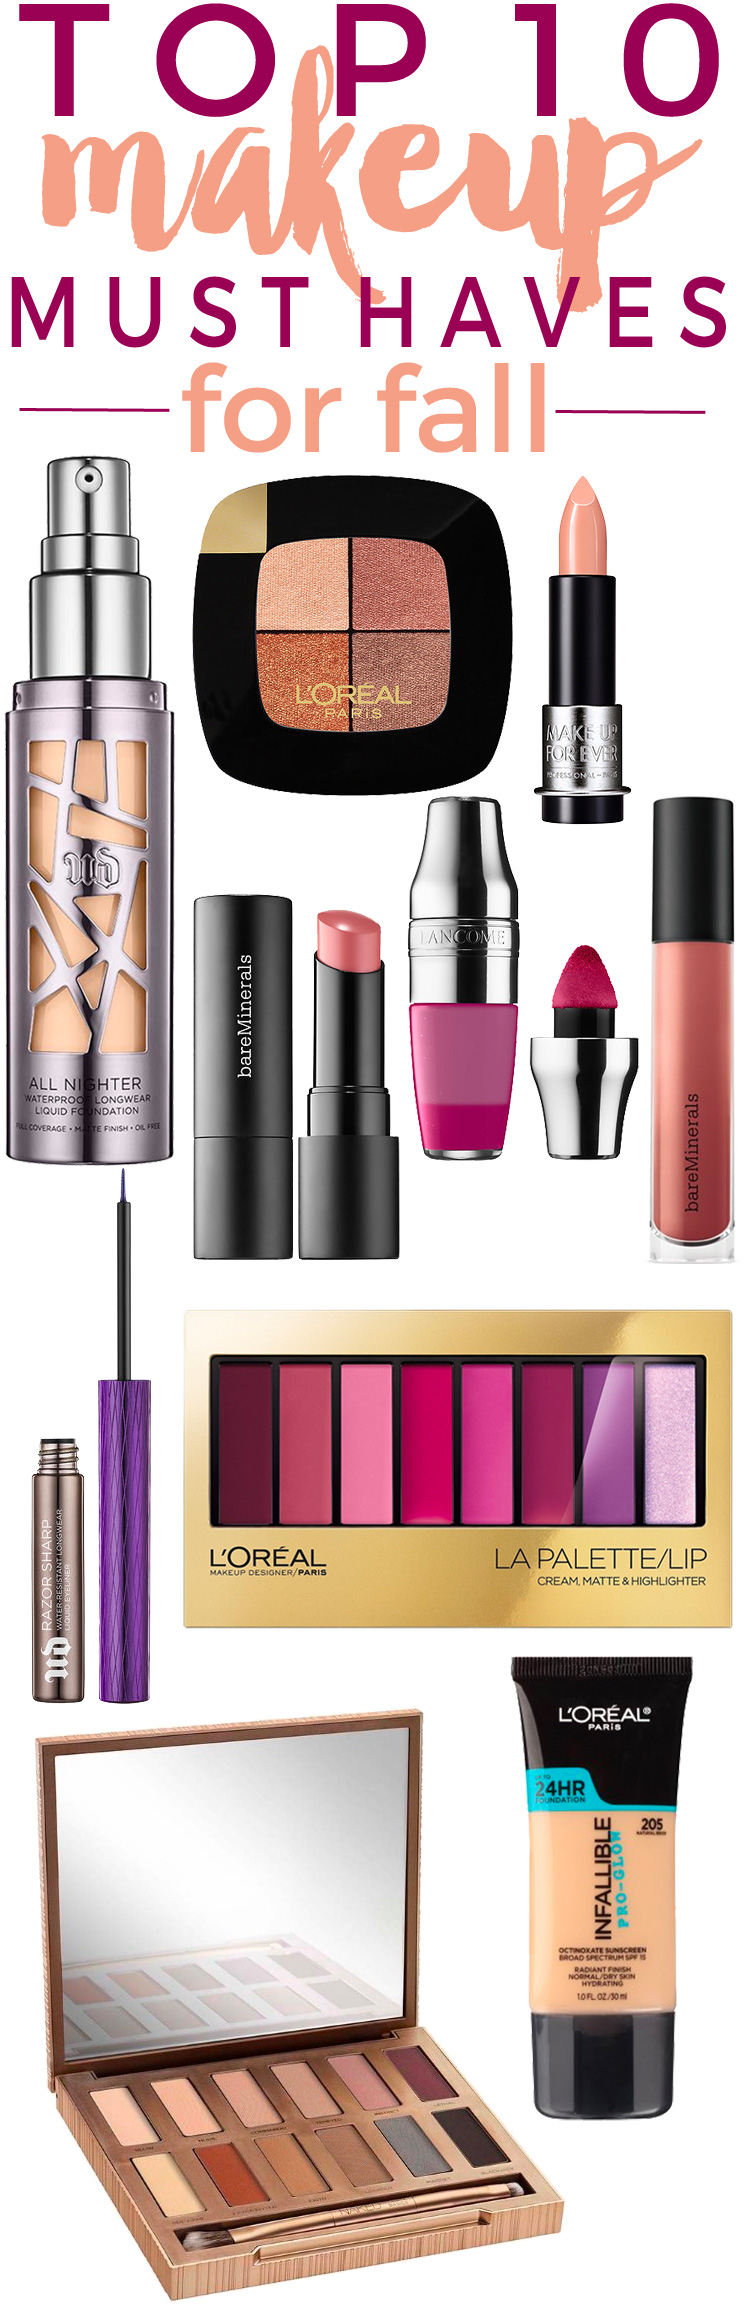 10 NEW Makeup Must-Haves for Fall. — Beautiful Makeup Search